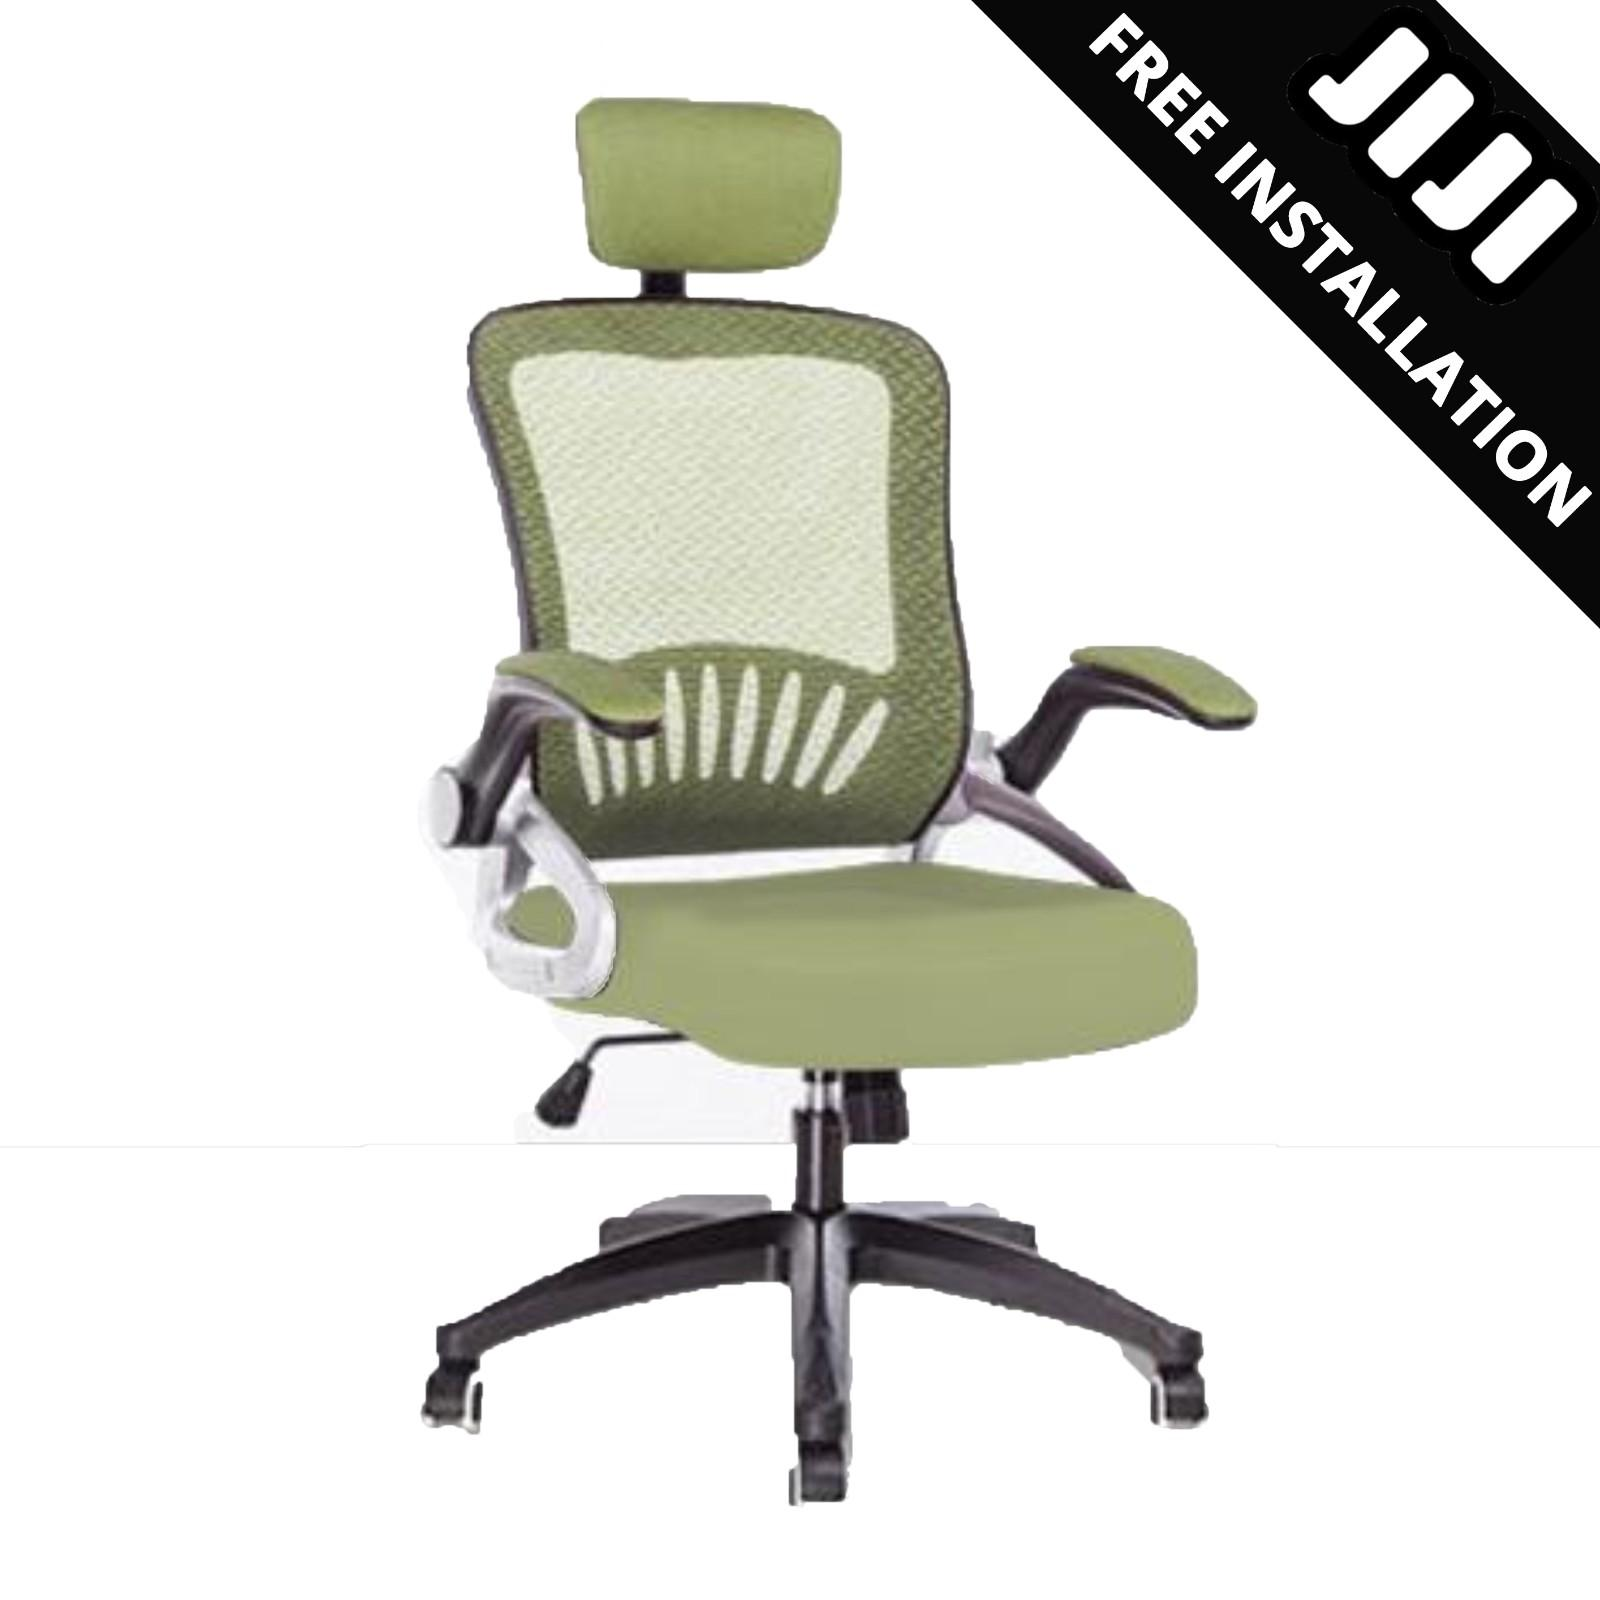 floor chairs singapore white high back dining adult spine support chair correct posture